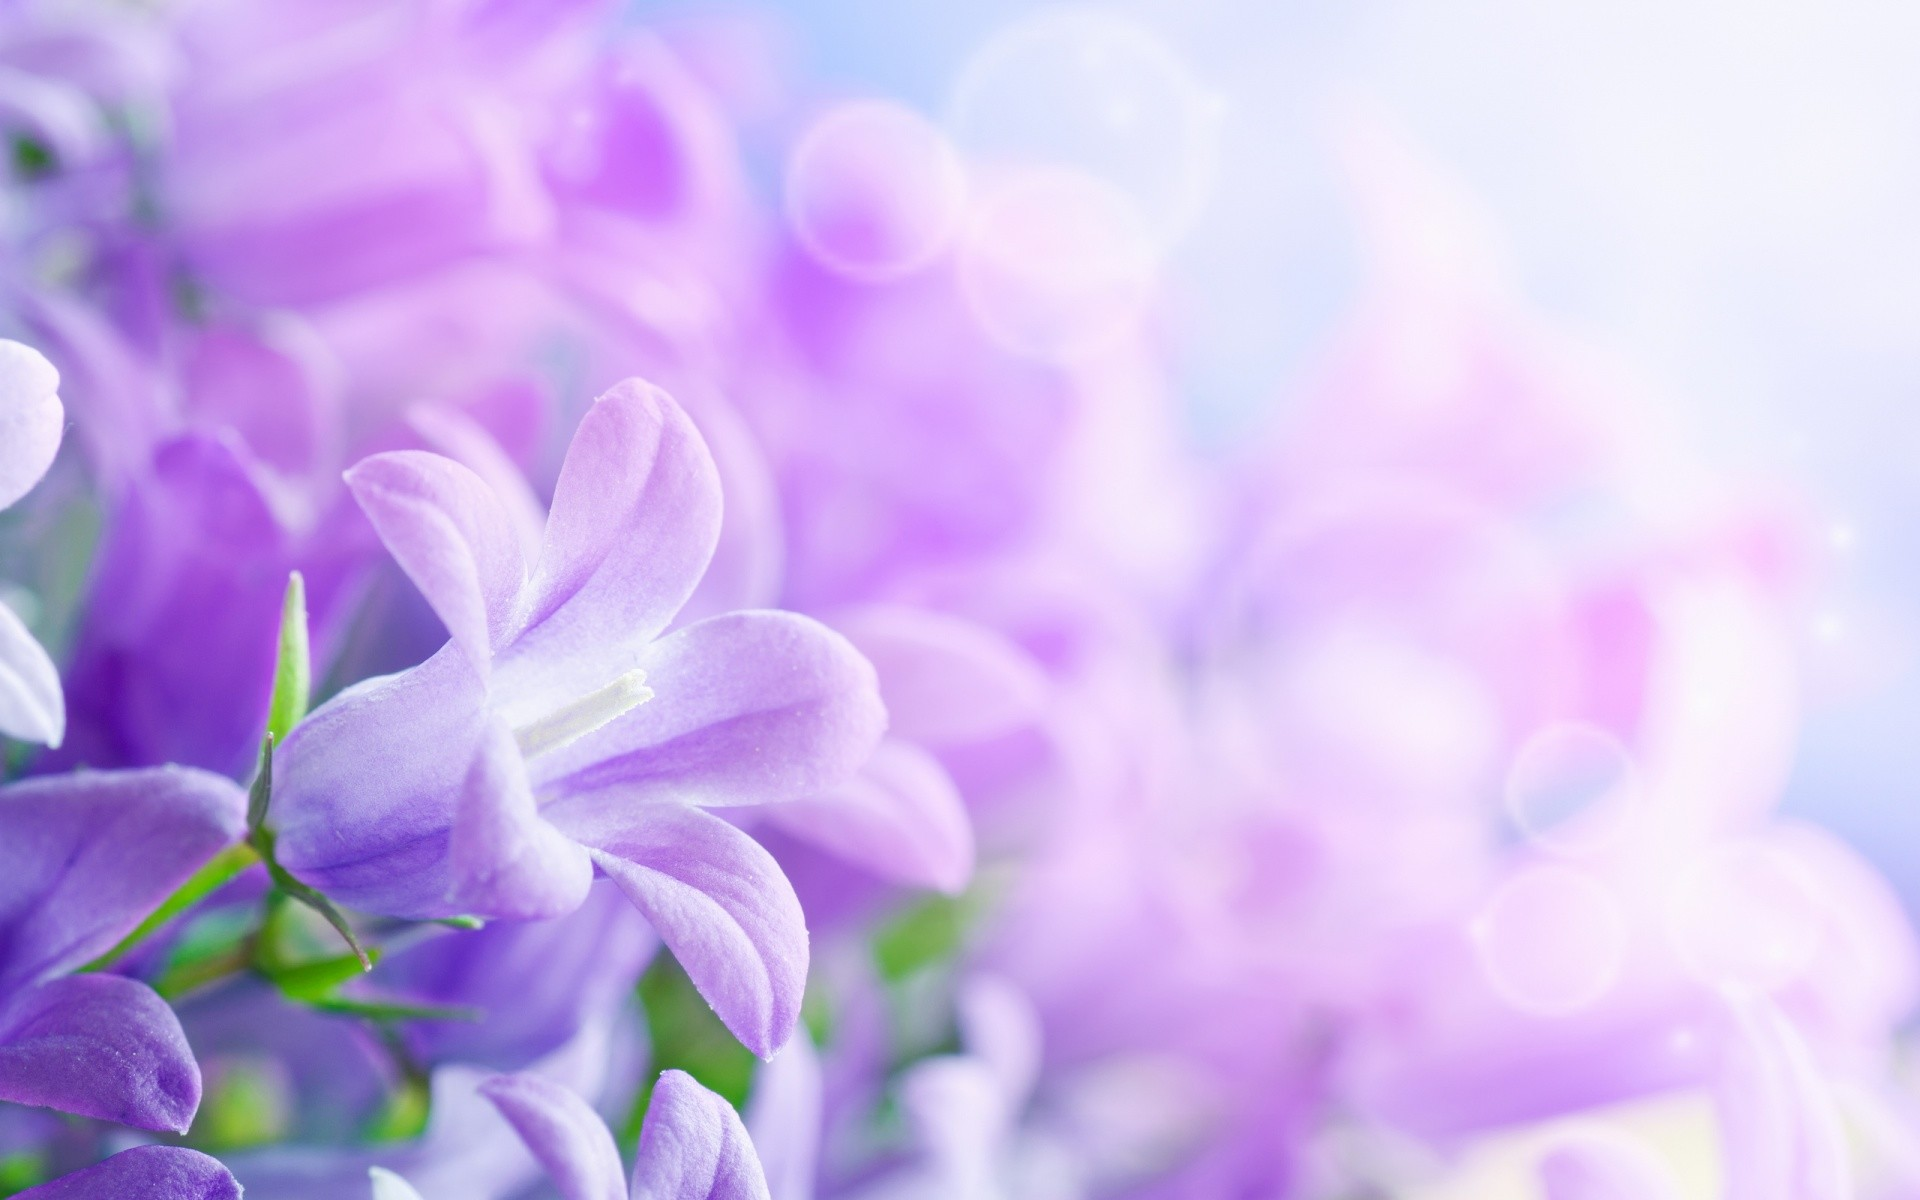 Res: 1920x1200, Download Free Wallpaper Flowers Background.